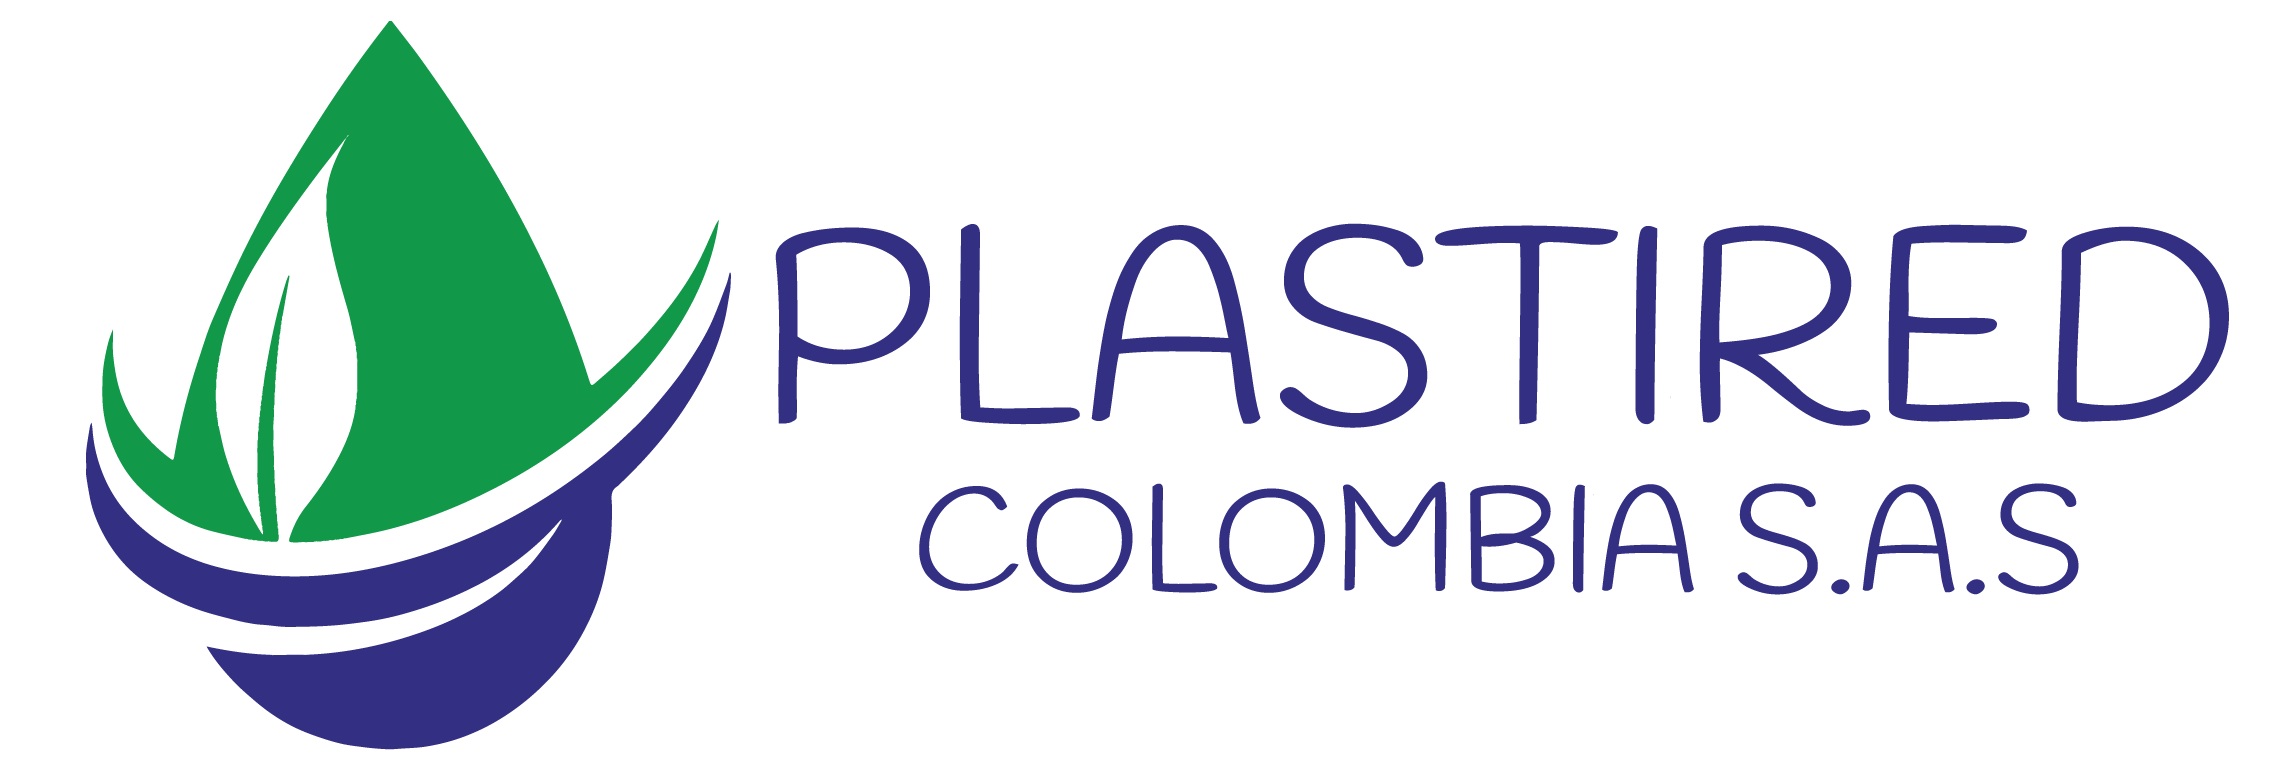 Plastired Colombia S.A.S